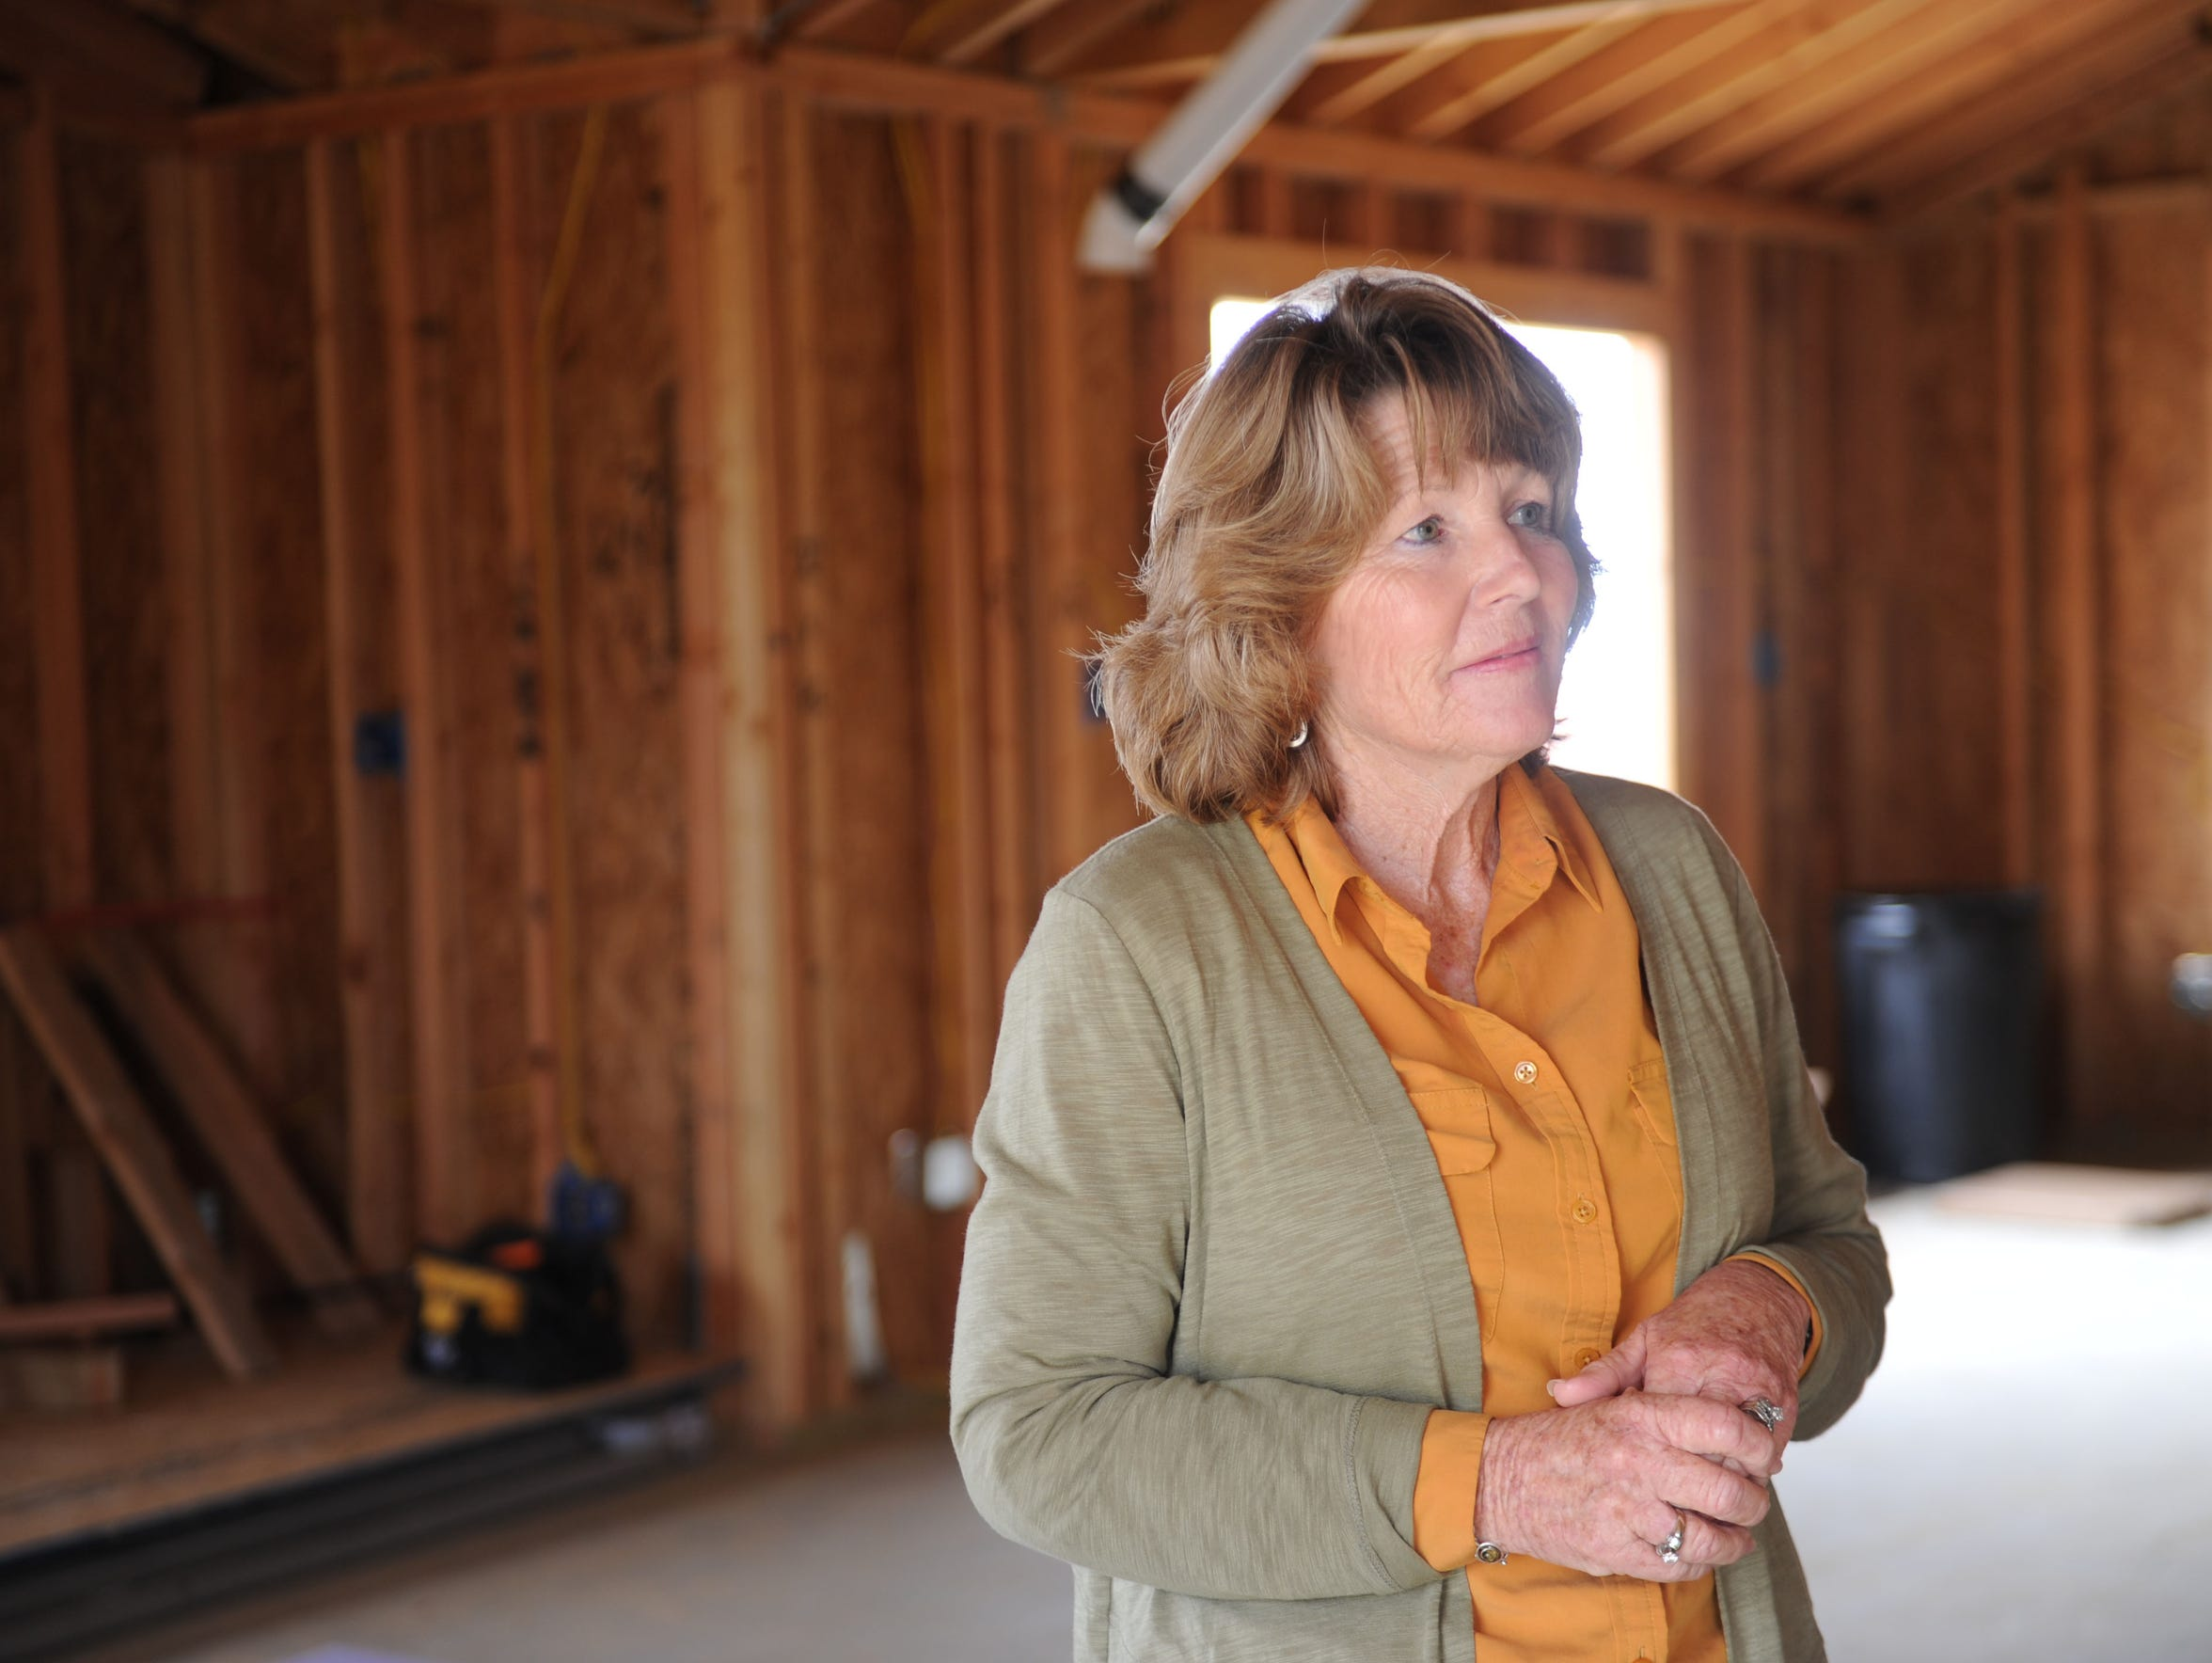 Sandra Fuller is inside her husband Ed's workshop that needs windows and drywalling. Their property was destroyed by the Thomas Fire. She lives in the Ondulando neighborhood in Ventura and is the first household to get a building permit.